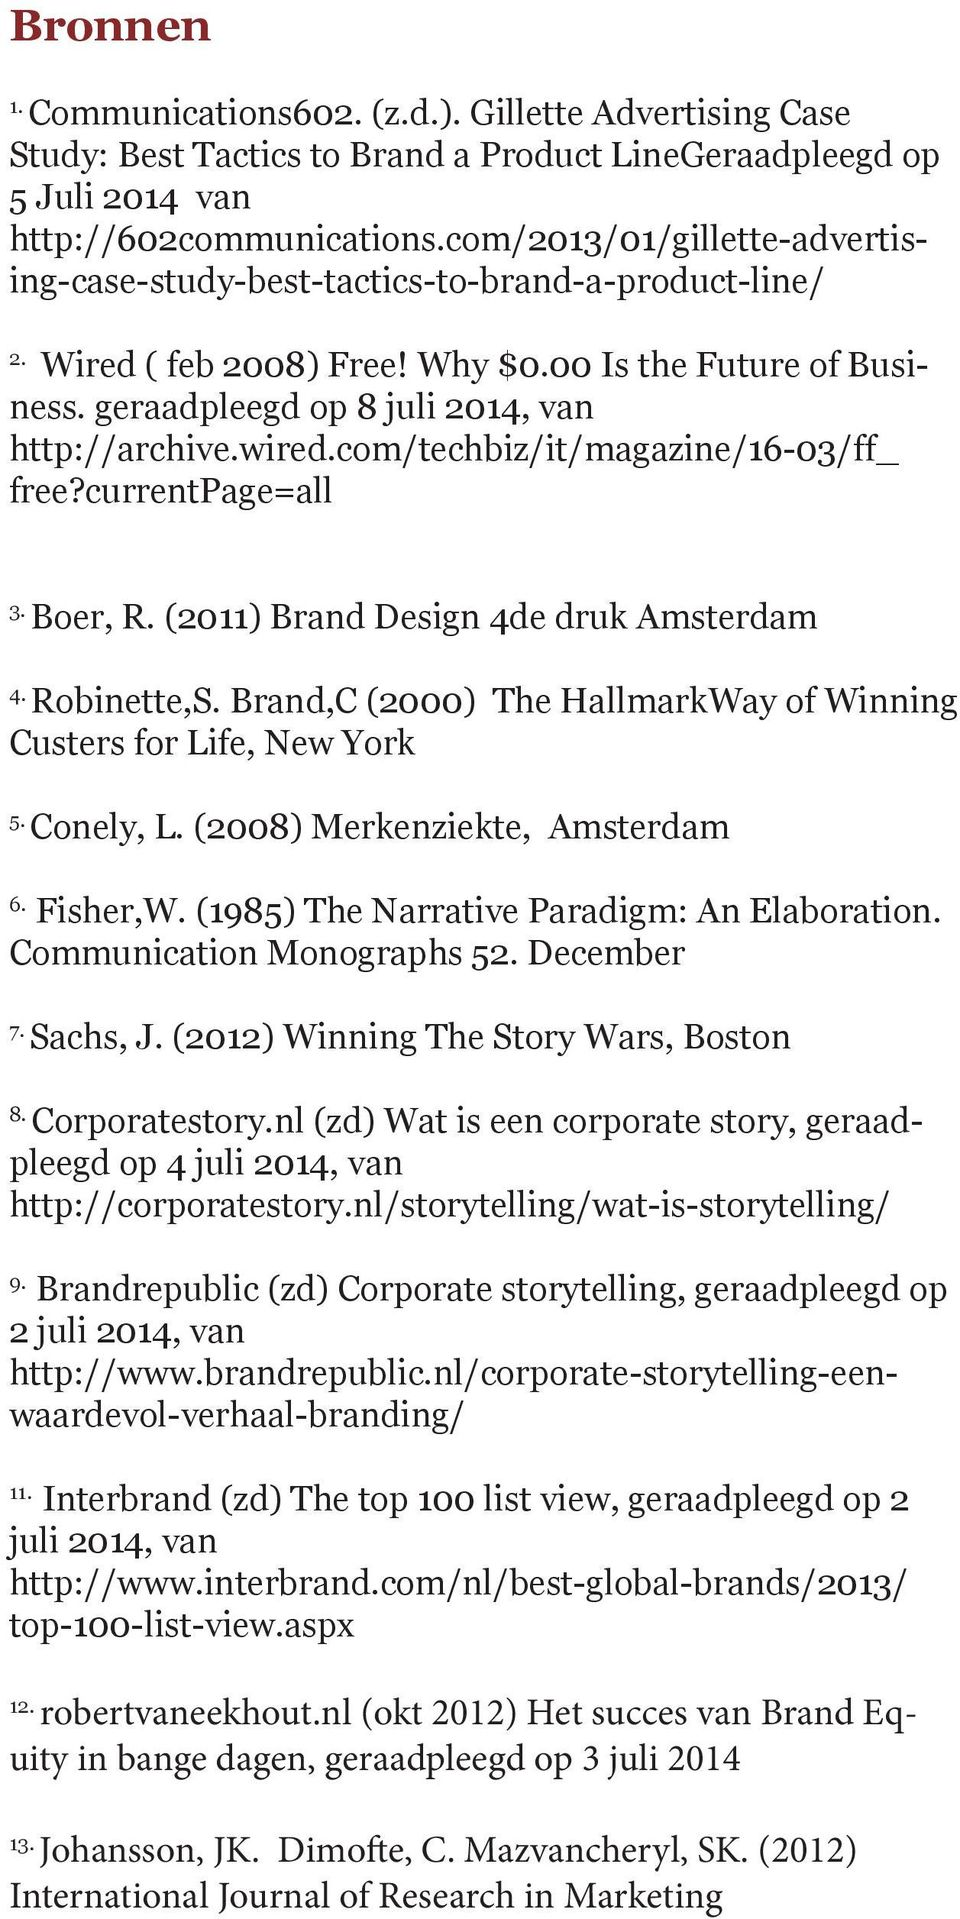 com/techbiz/it/magazine/16-03/ff_ free?currentpage=all 3. Boer, R. (2011) Brand Design 4de druk Amsterdam 4. Robinette,S. Brand,C (2000) The HallmarkWay of Winning Custers for Life, New York 5.